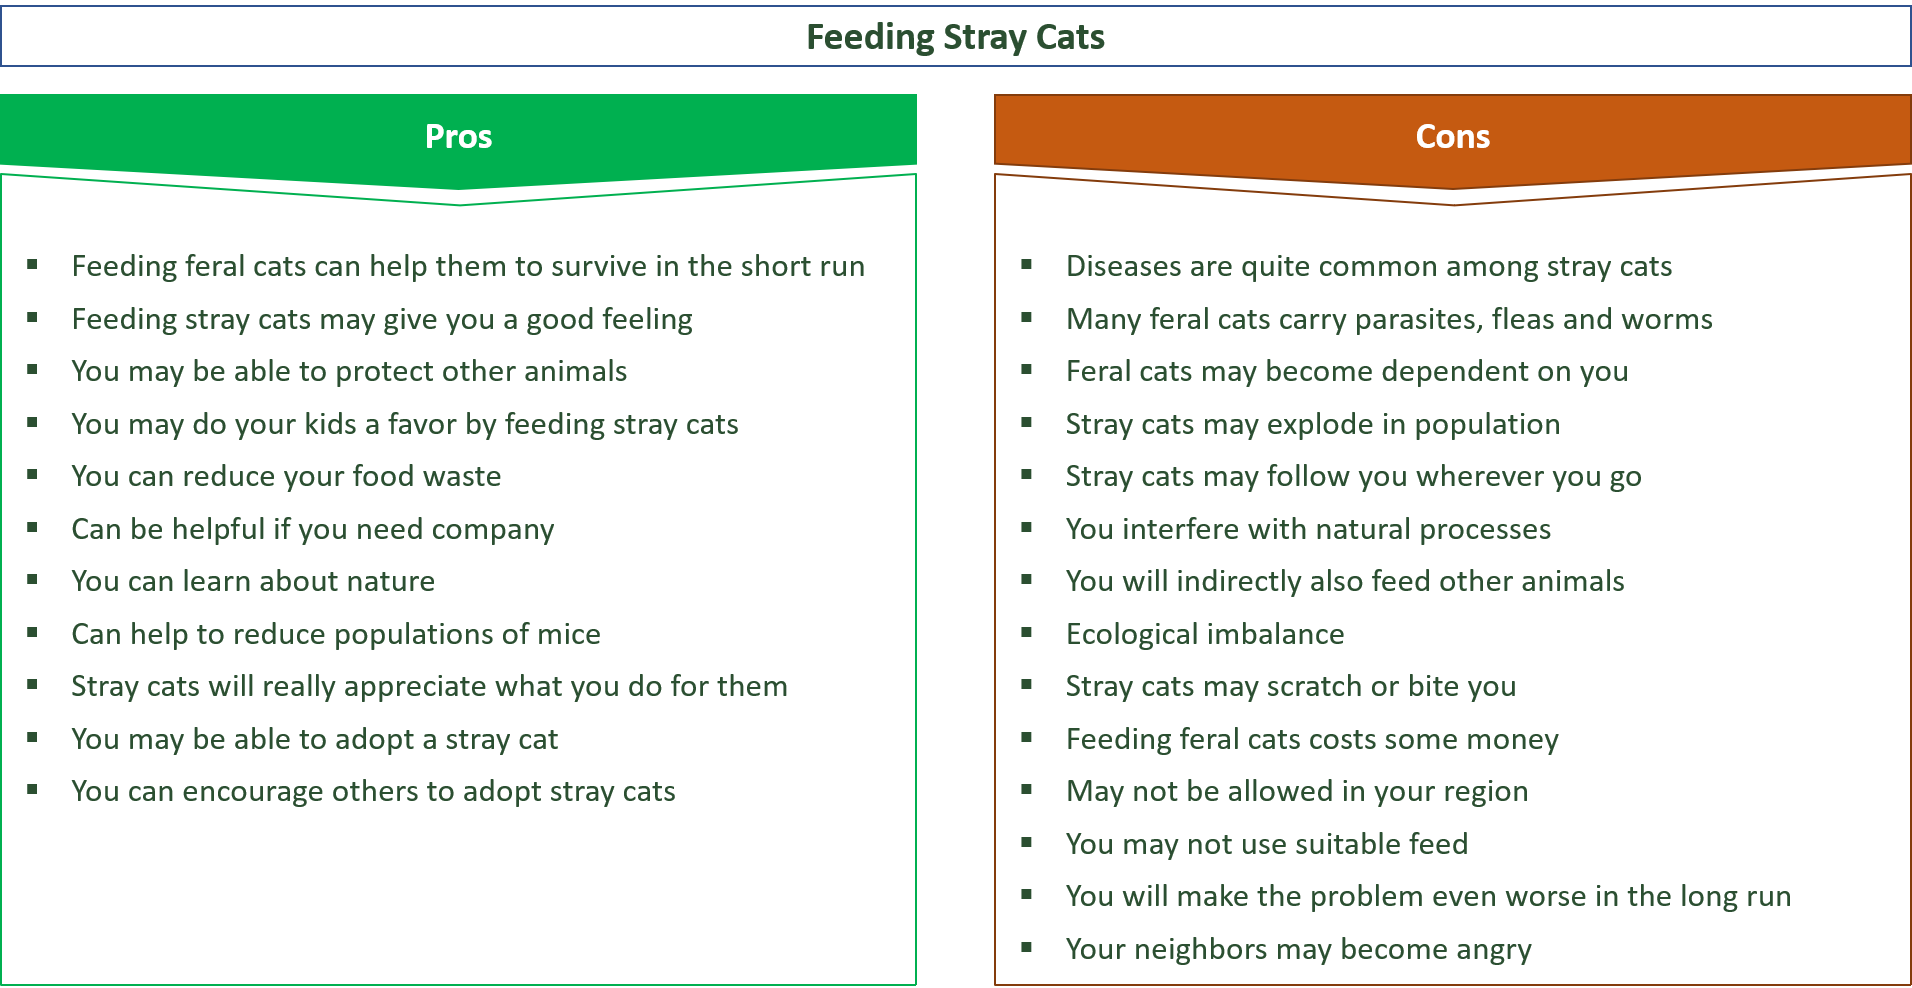 advantages and disadvantages of feeding stray cats